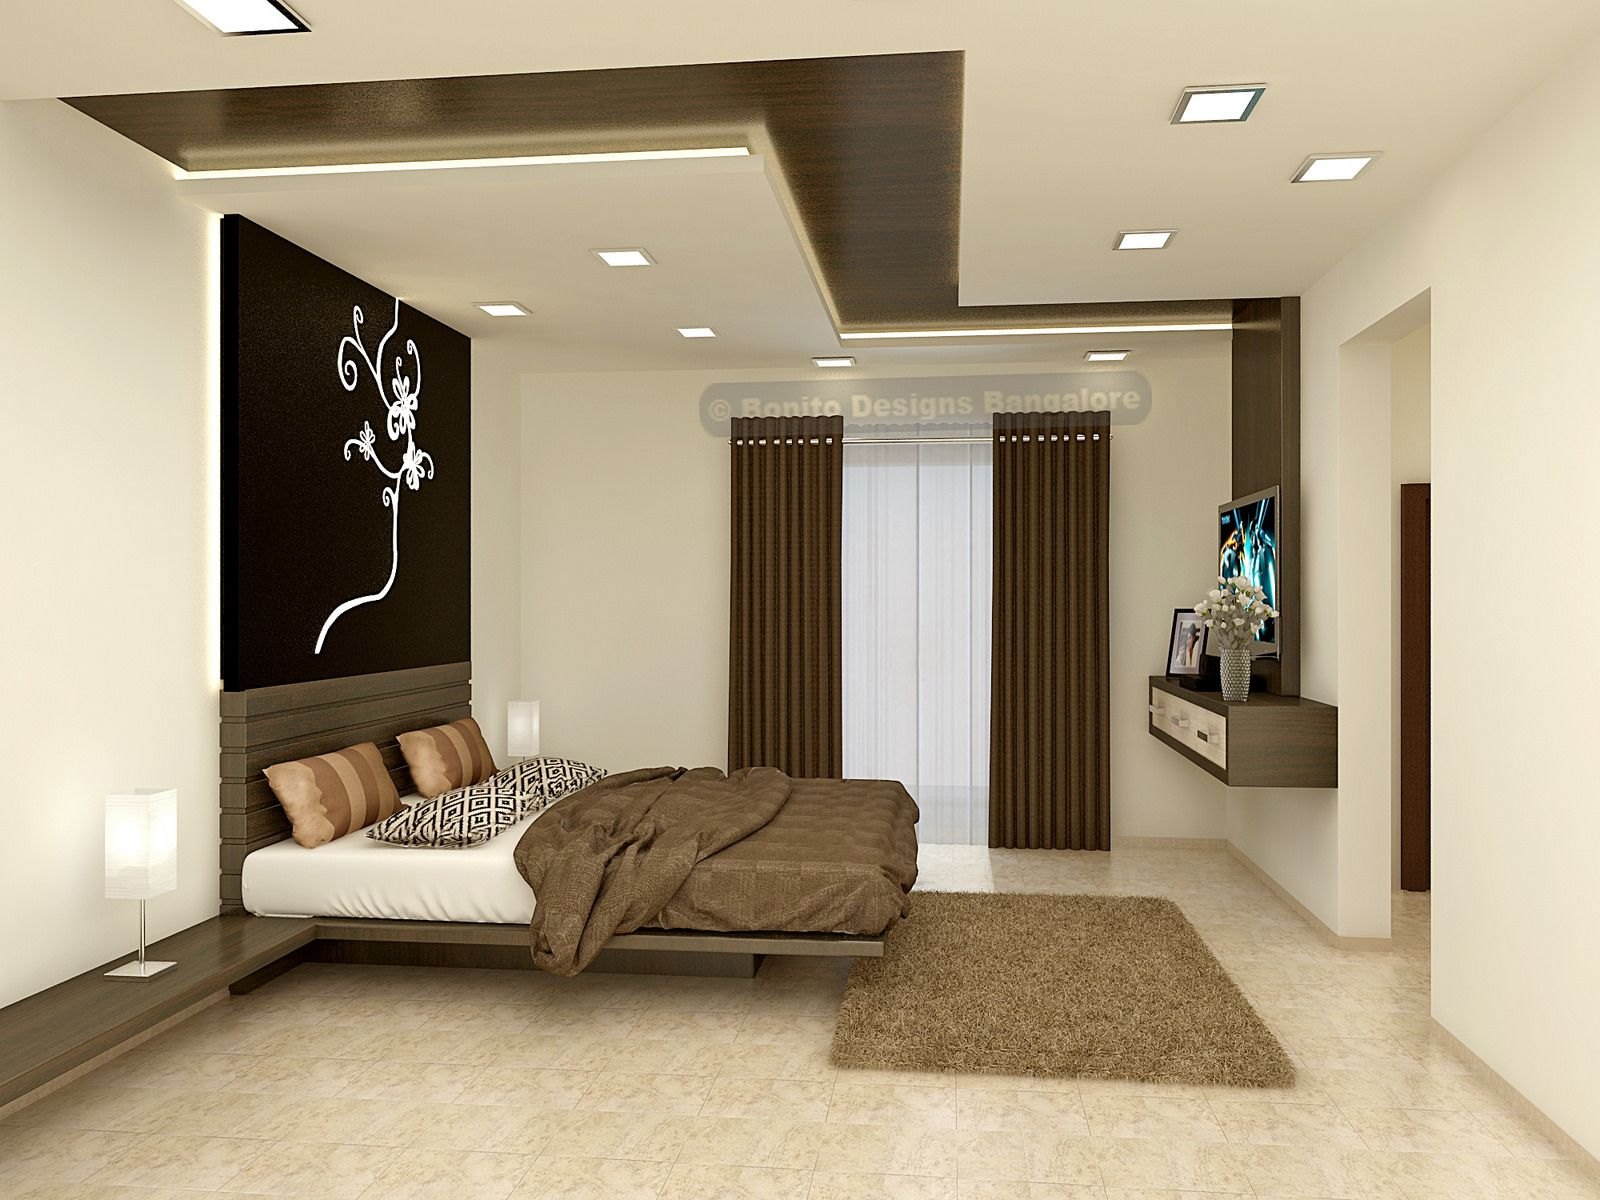 Sandepmbr 1 ceilings bedrooms and ceiling for Best fall ceiling designs